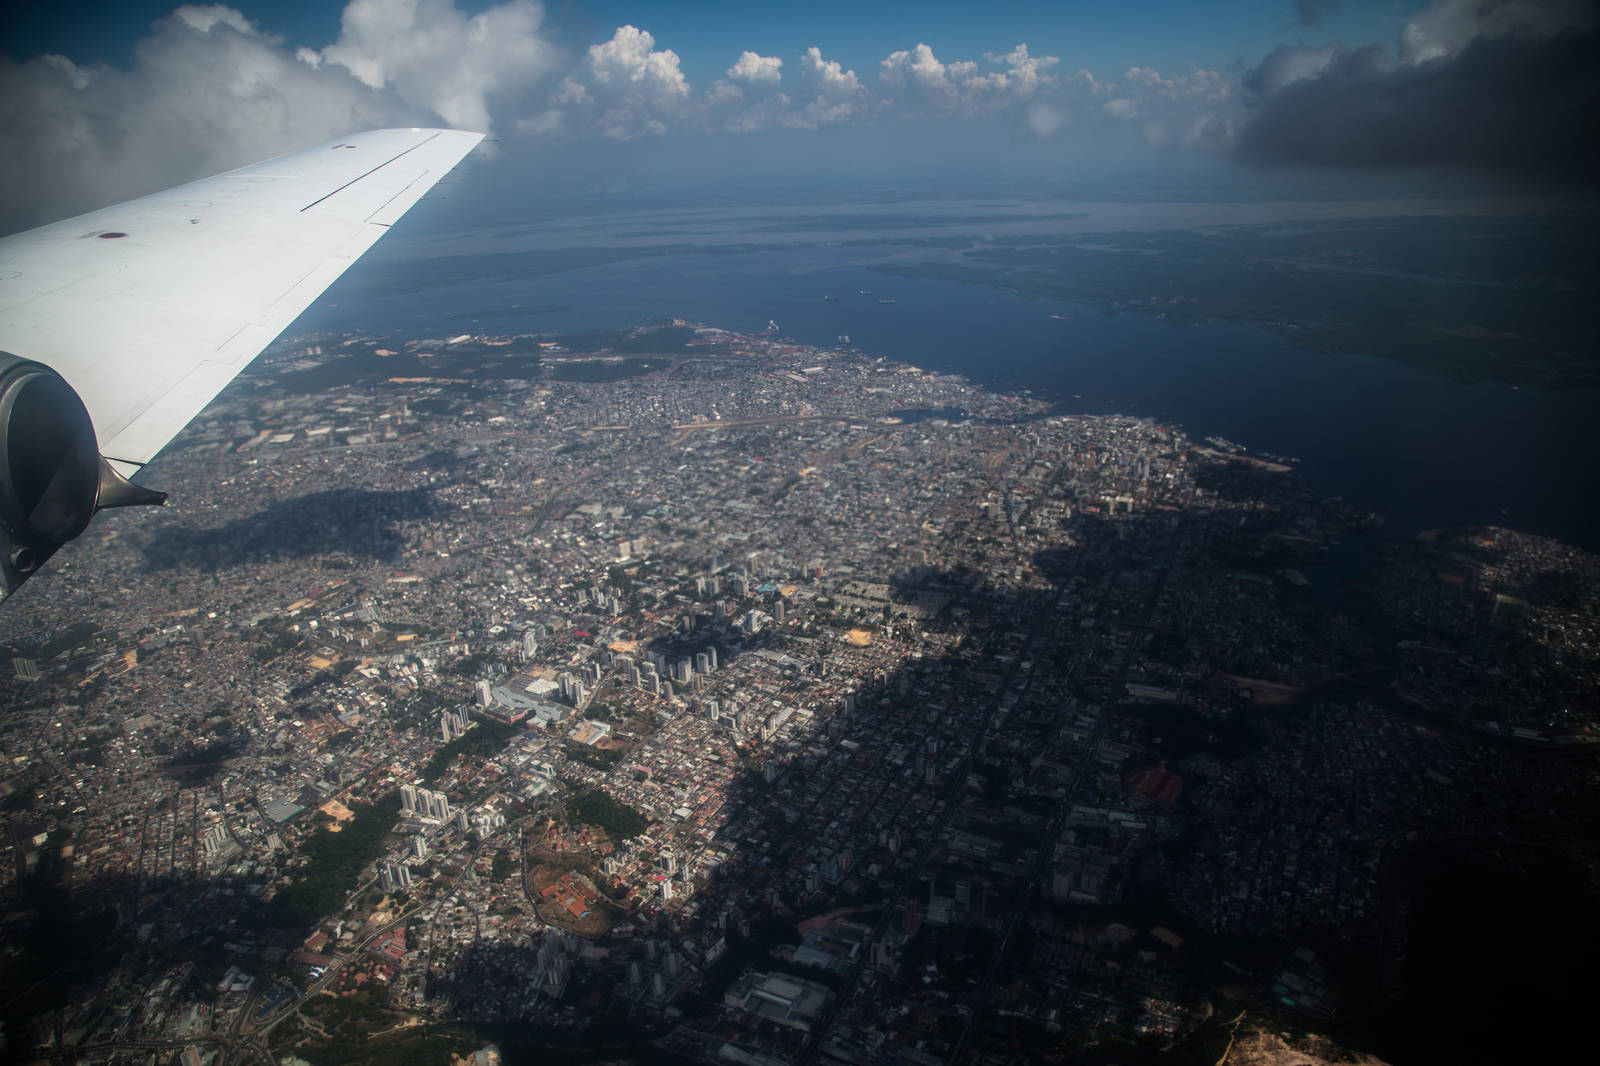 A research aircraft obtains data on pollutants from the sky above Manaus, Brazil